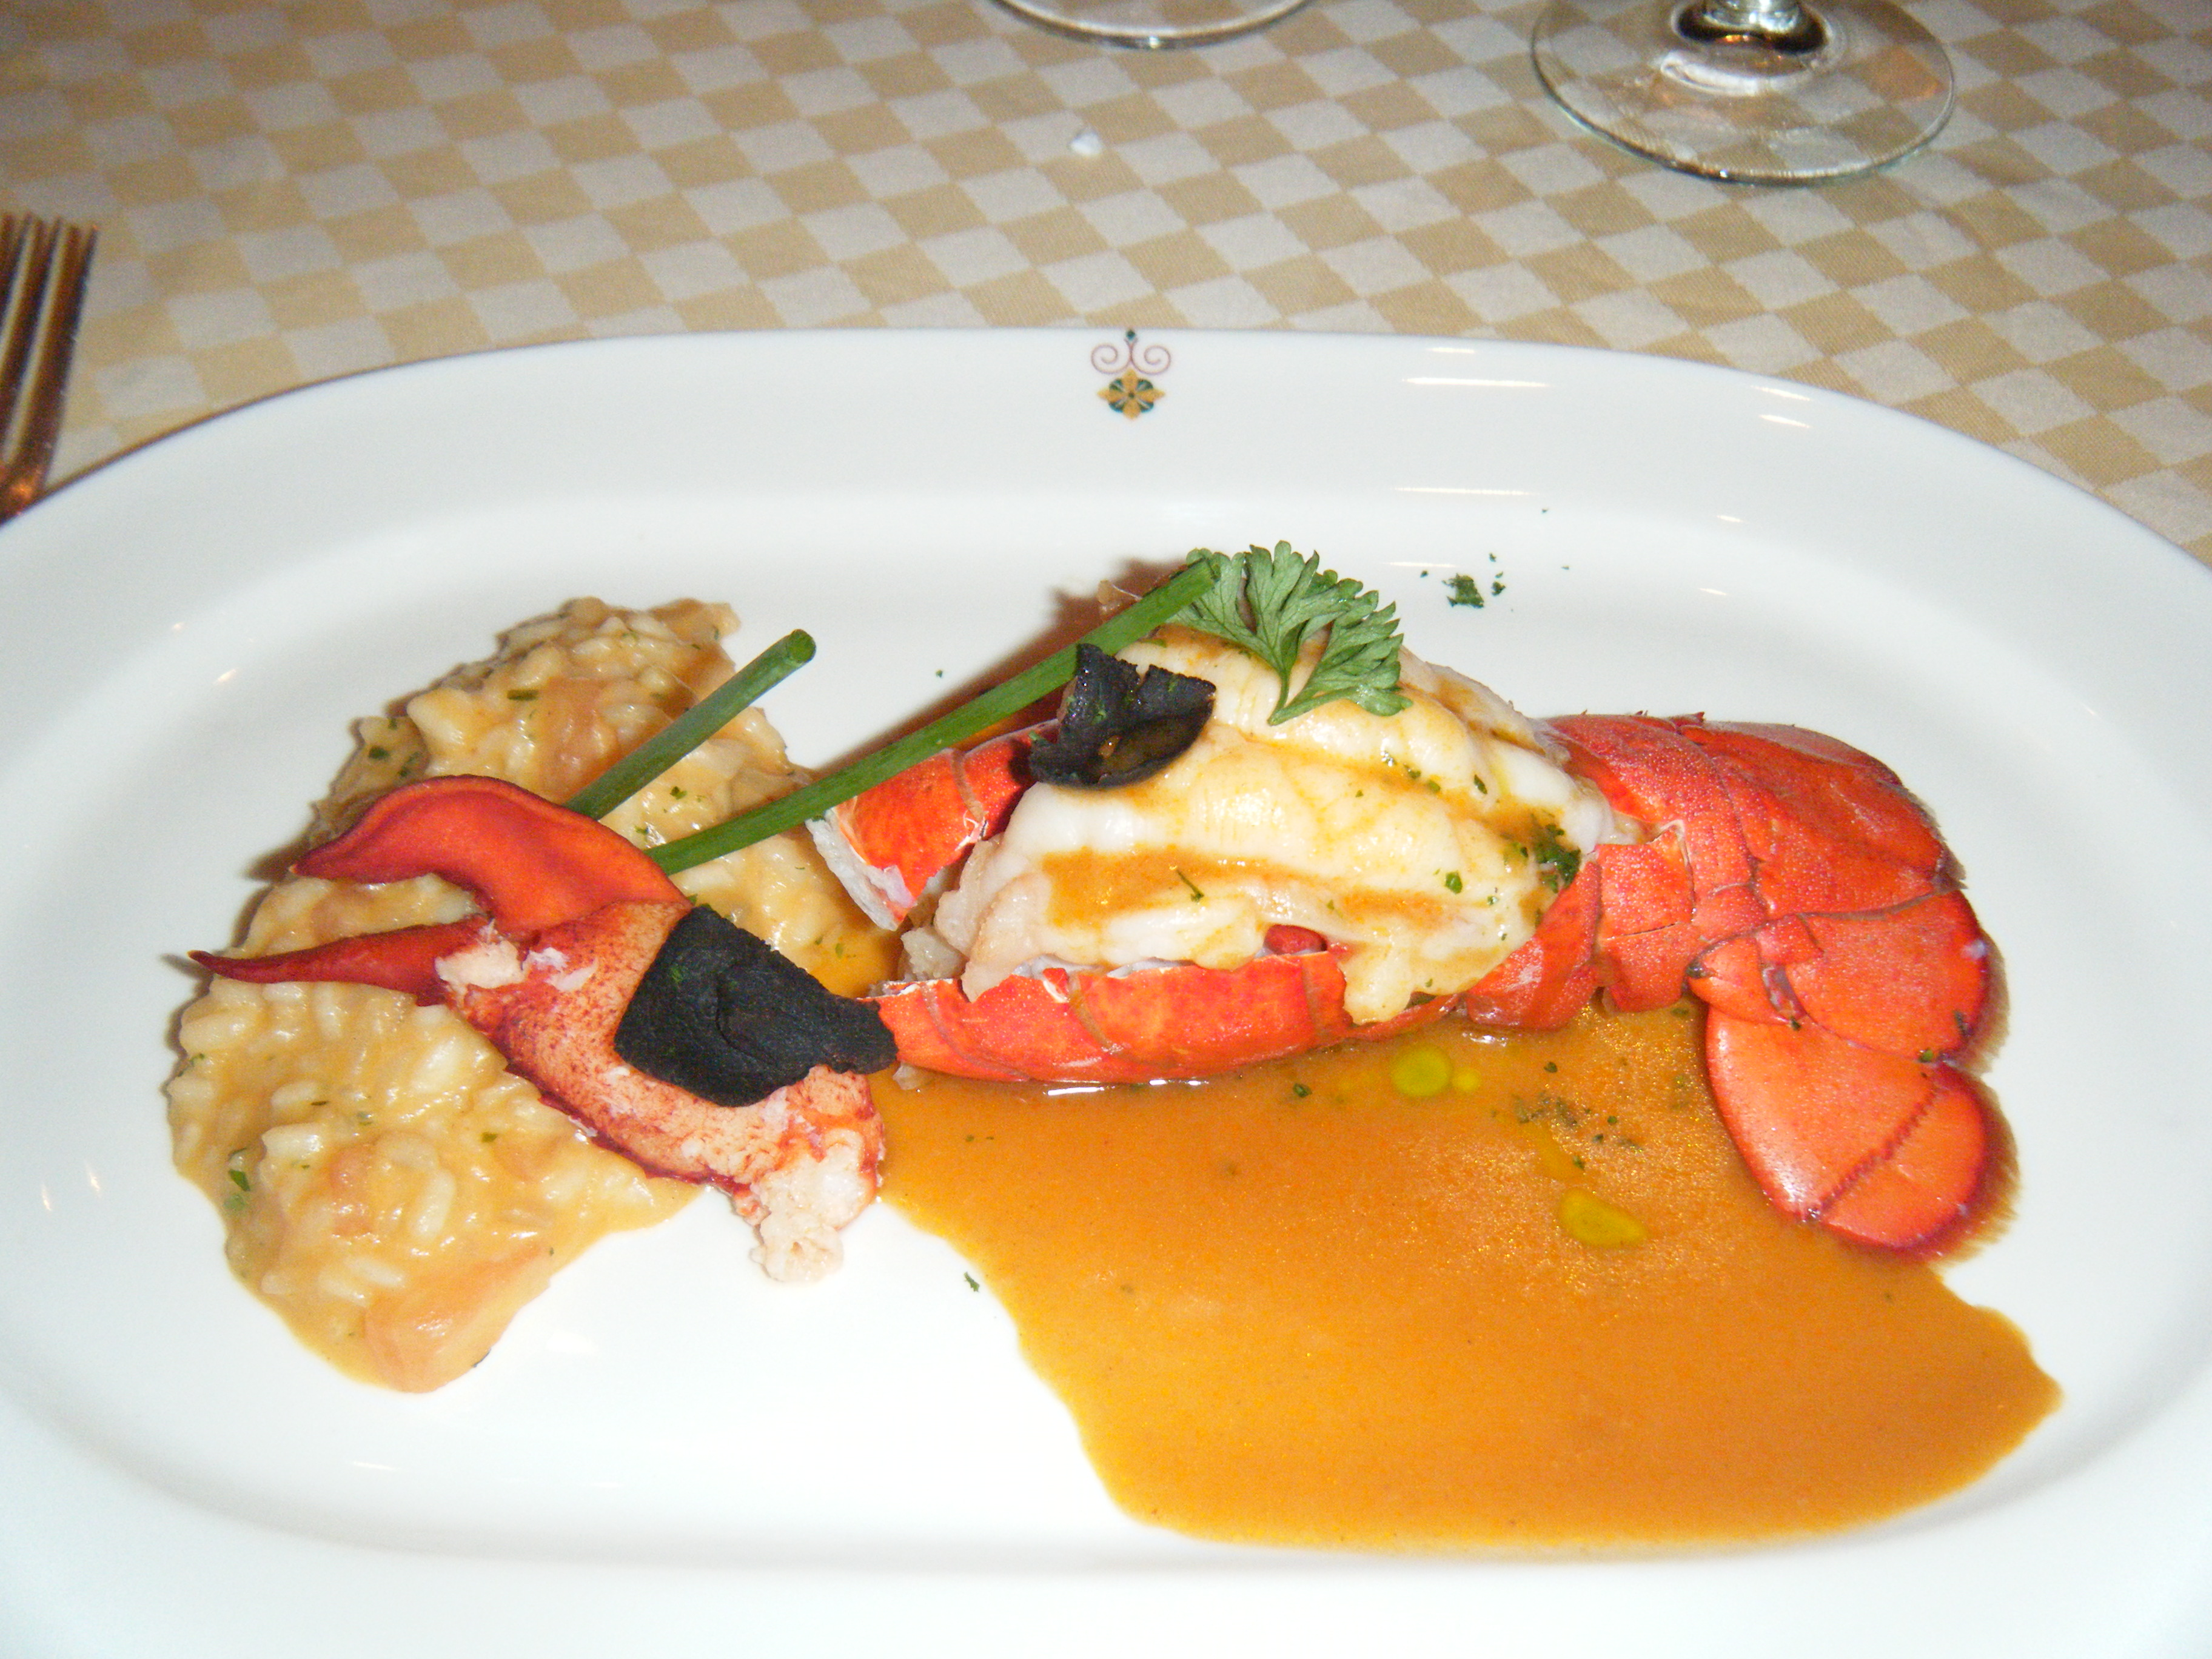 Sabatini's Lobster Three Ways was perfectly prepared and served.